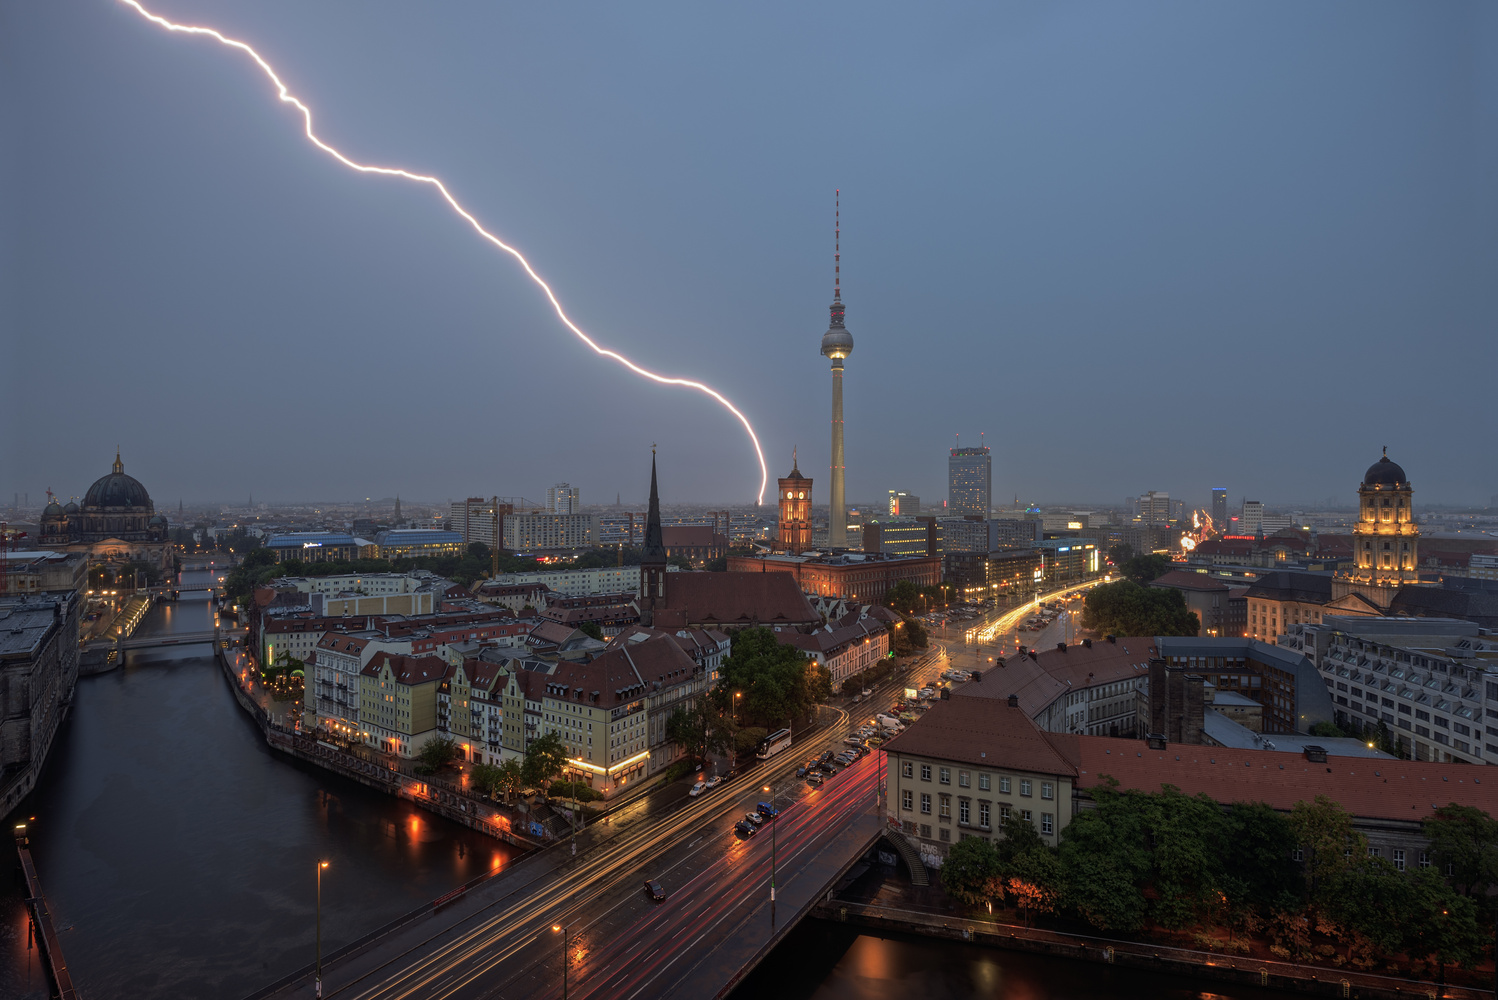 Lightning over the City (Berlin/Germany) by Bruce Girault